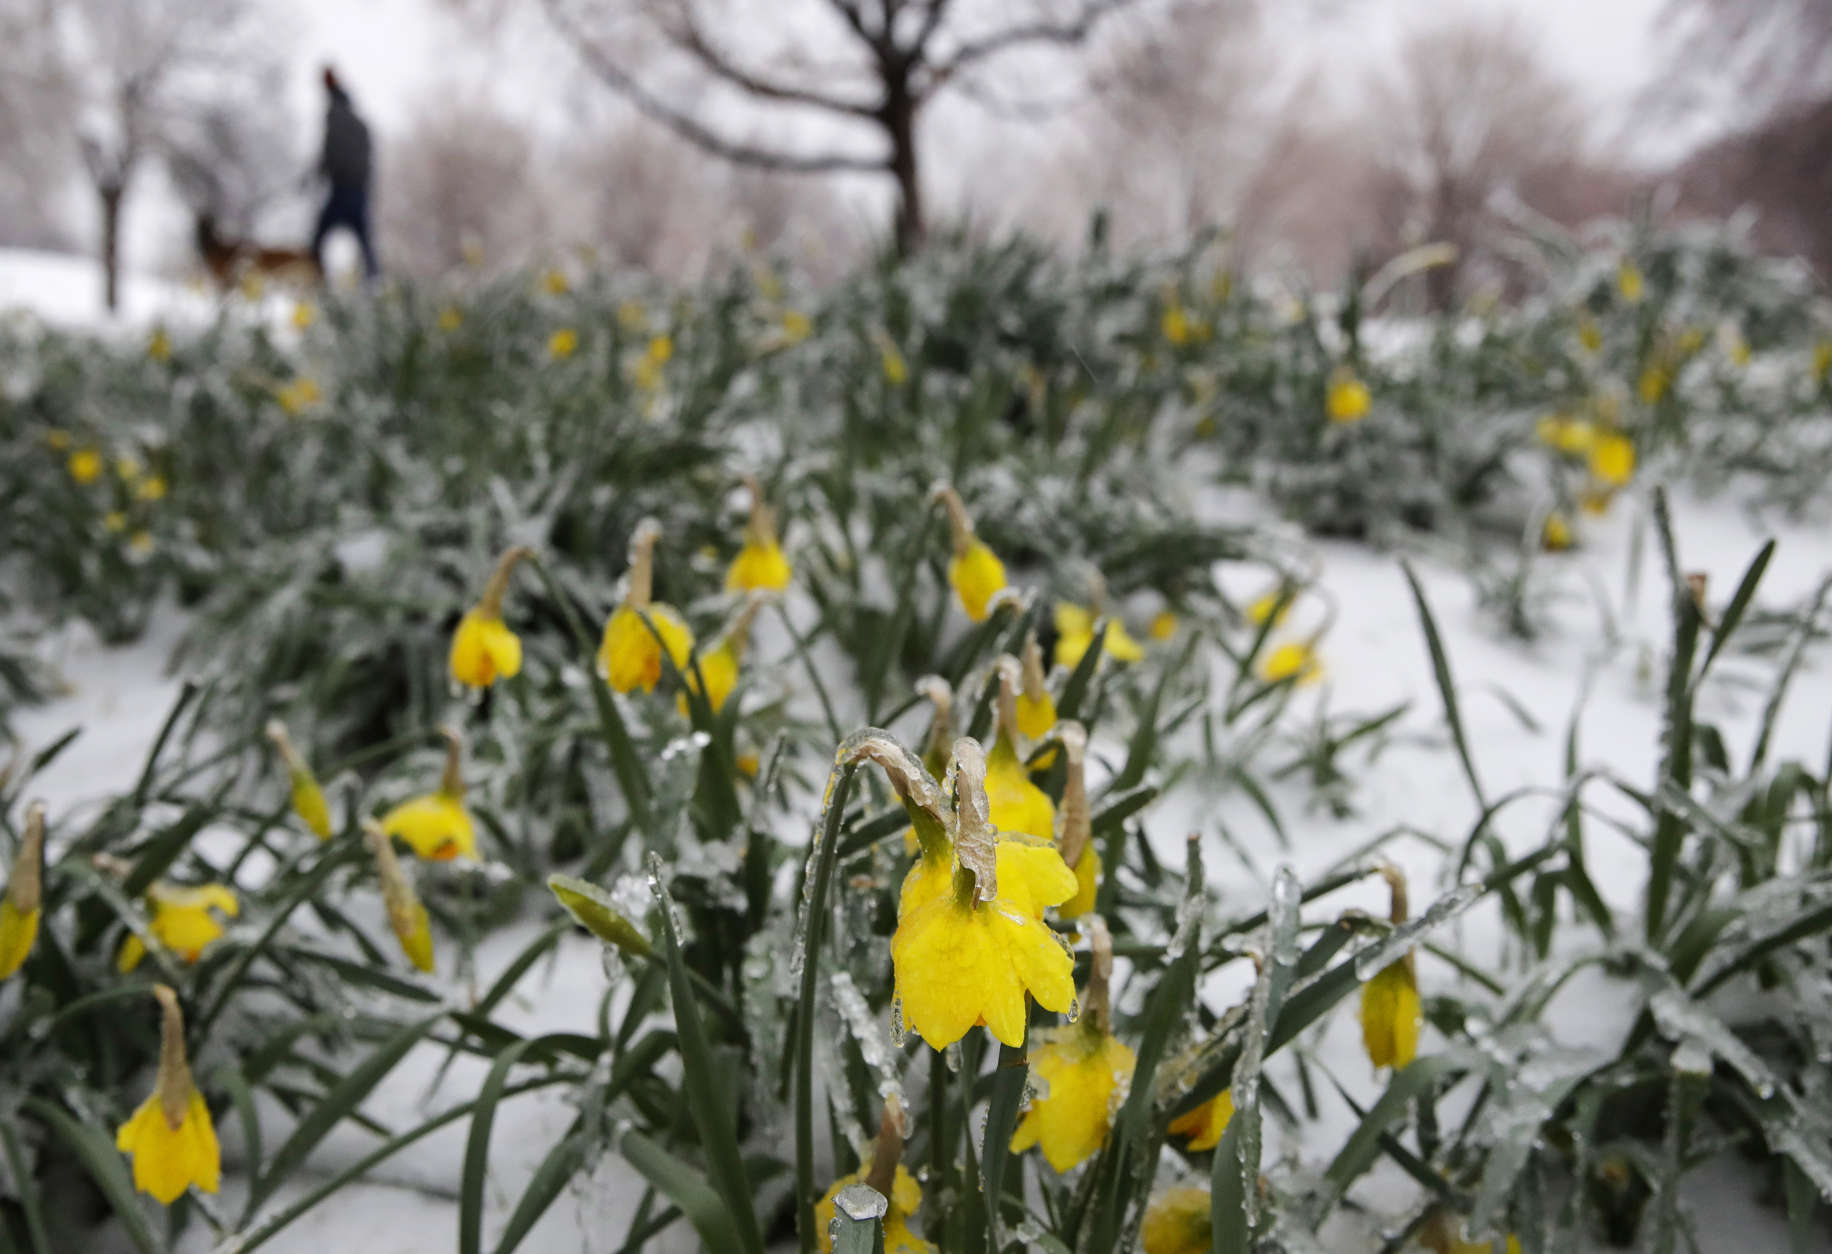 Flowers that had bloomed in recent weeks are covered in ice in Baltimore's Patterson Park as a winter storm moves through the region, Tuesday, March 14, 2017. (AP Photo/Patrick Semansky)